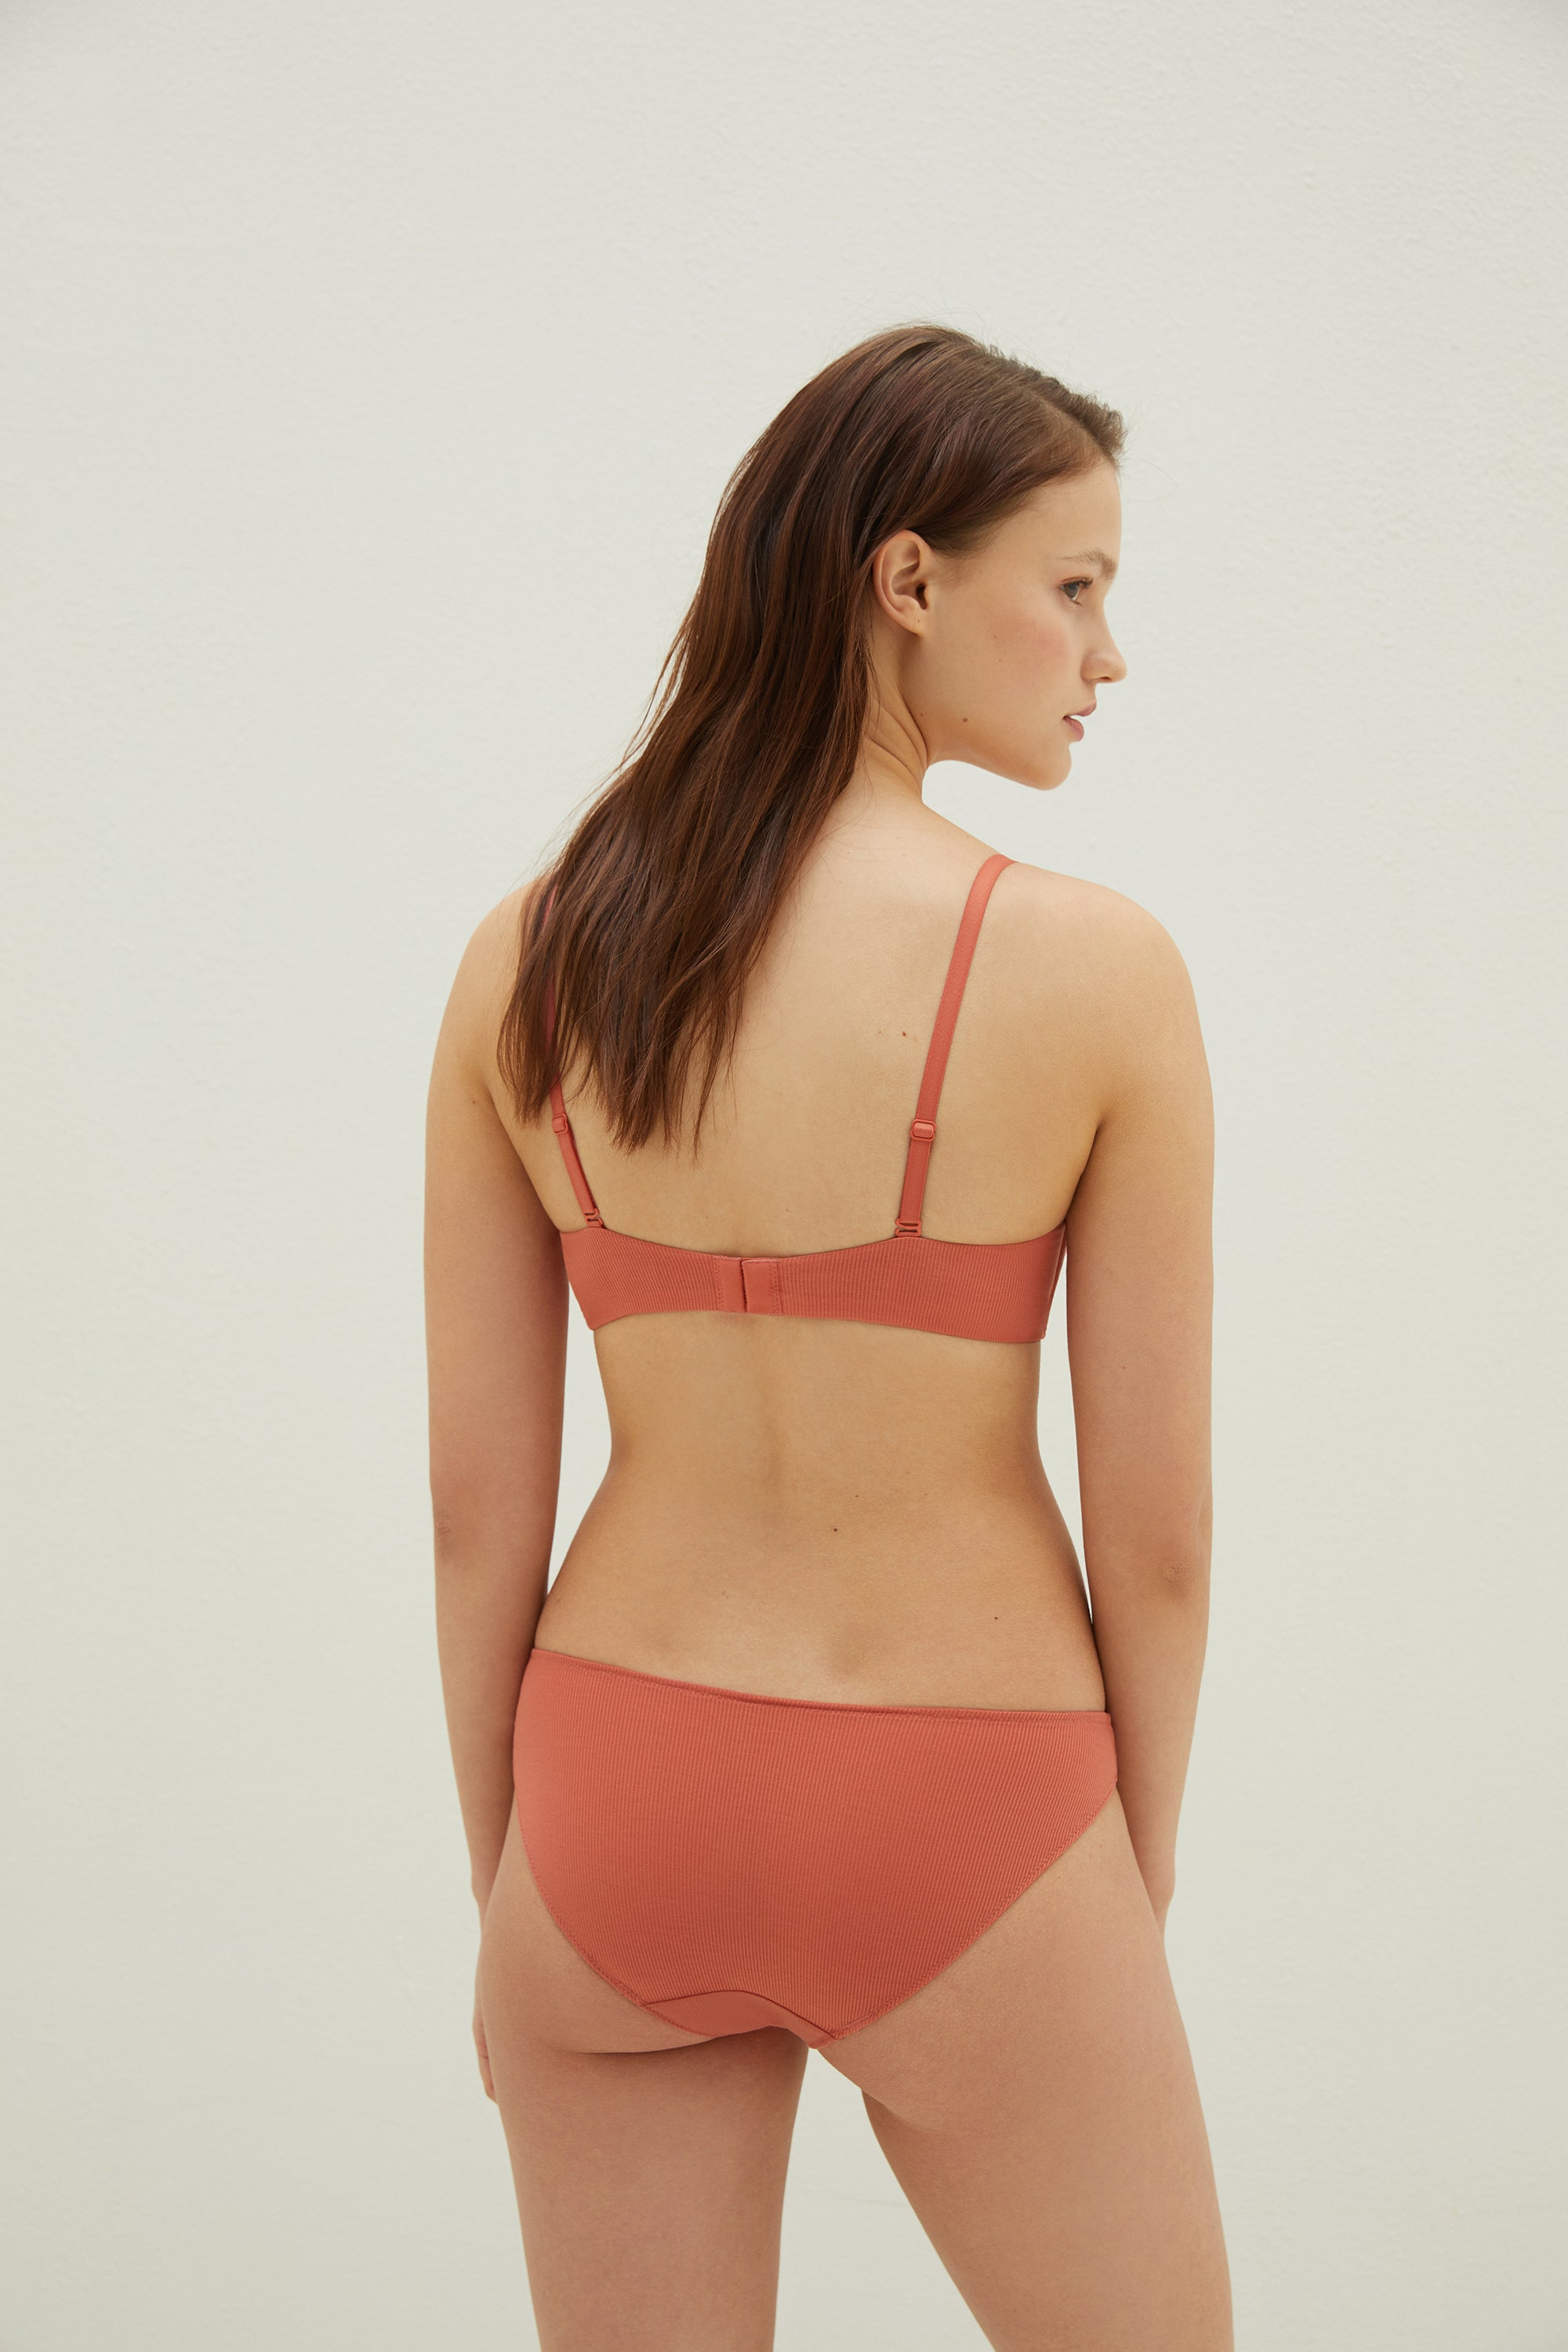 NEIWAI Ribbed Cross Front Long Triangle Bra in Orange. Adjustable Band